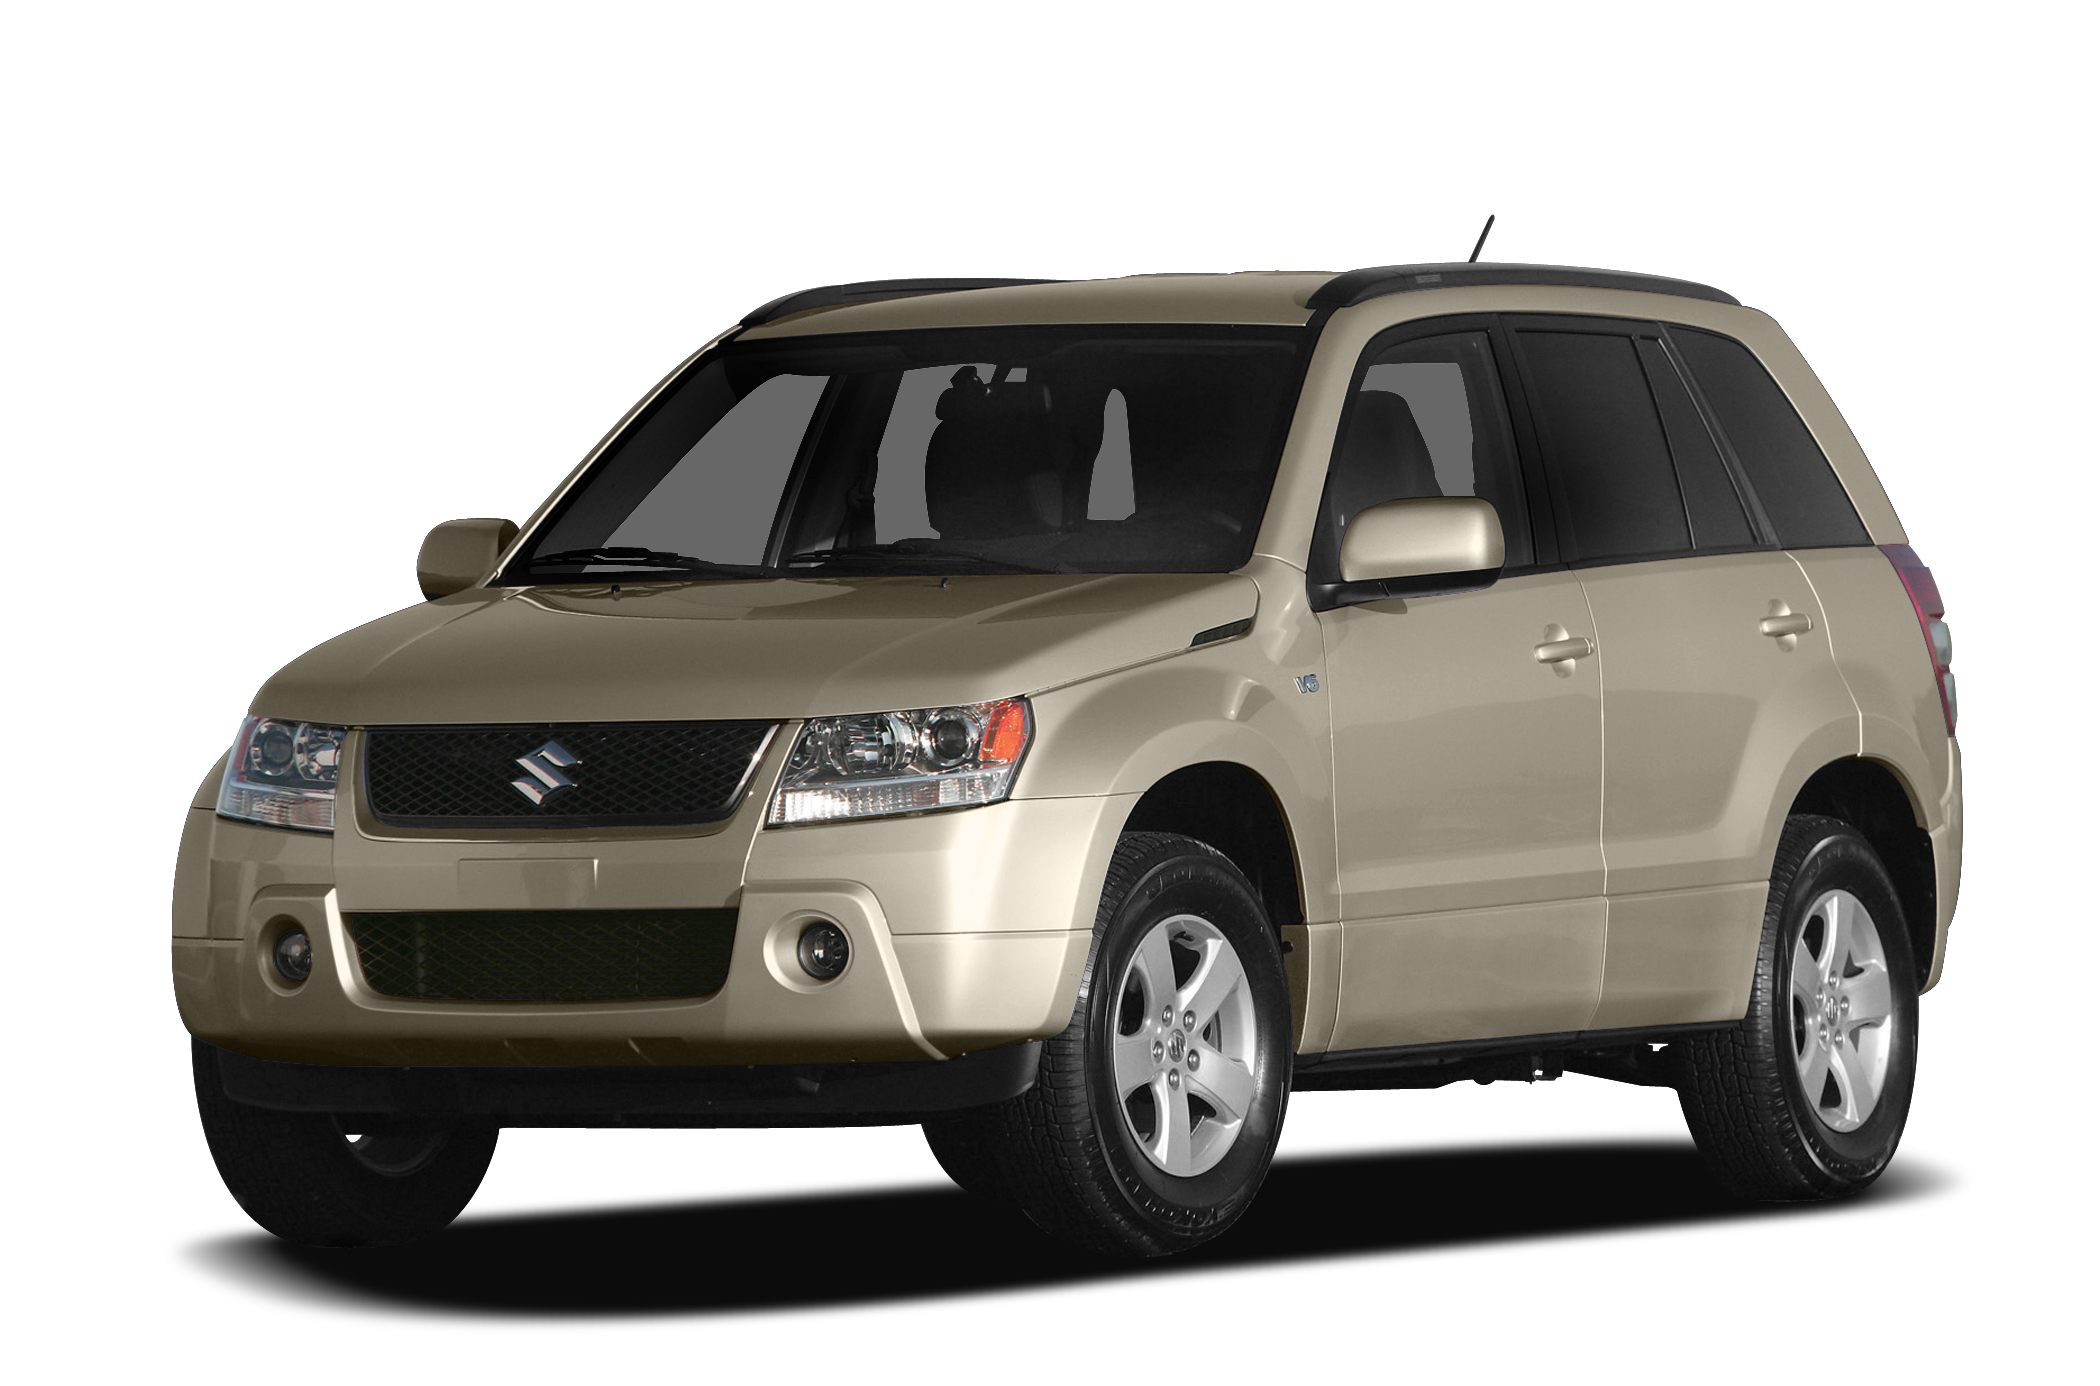 2007 Suzuki Grand Vitara Xsport SUV for sale in Greer for $6,900 with 72,401 miles